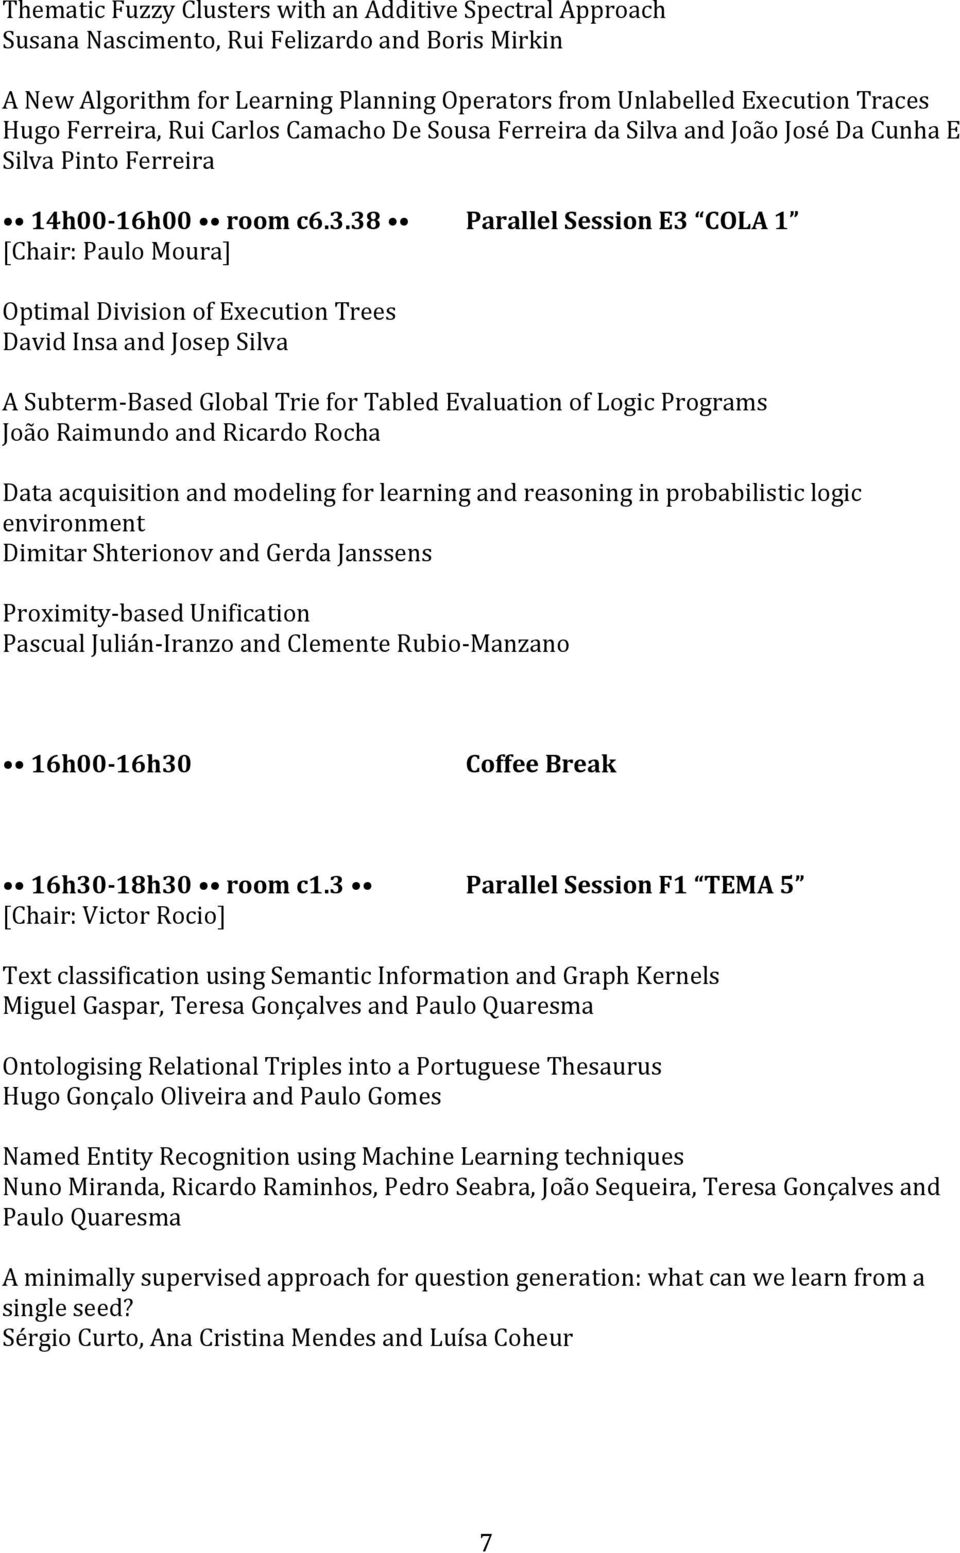 38 [Chair: Paulo Moura] Parallel Session E3 COLA 1 Optimal Division of Execution Trees David Insa and Josep Silva A Subterm- Based Global Trie for Tabled Evaluation of Logic Programs João Raimundo